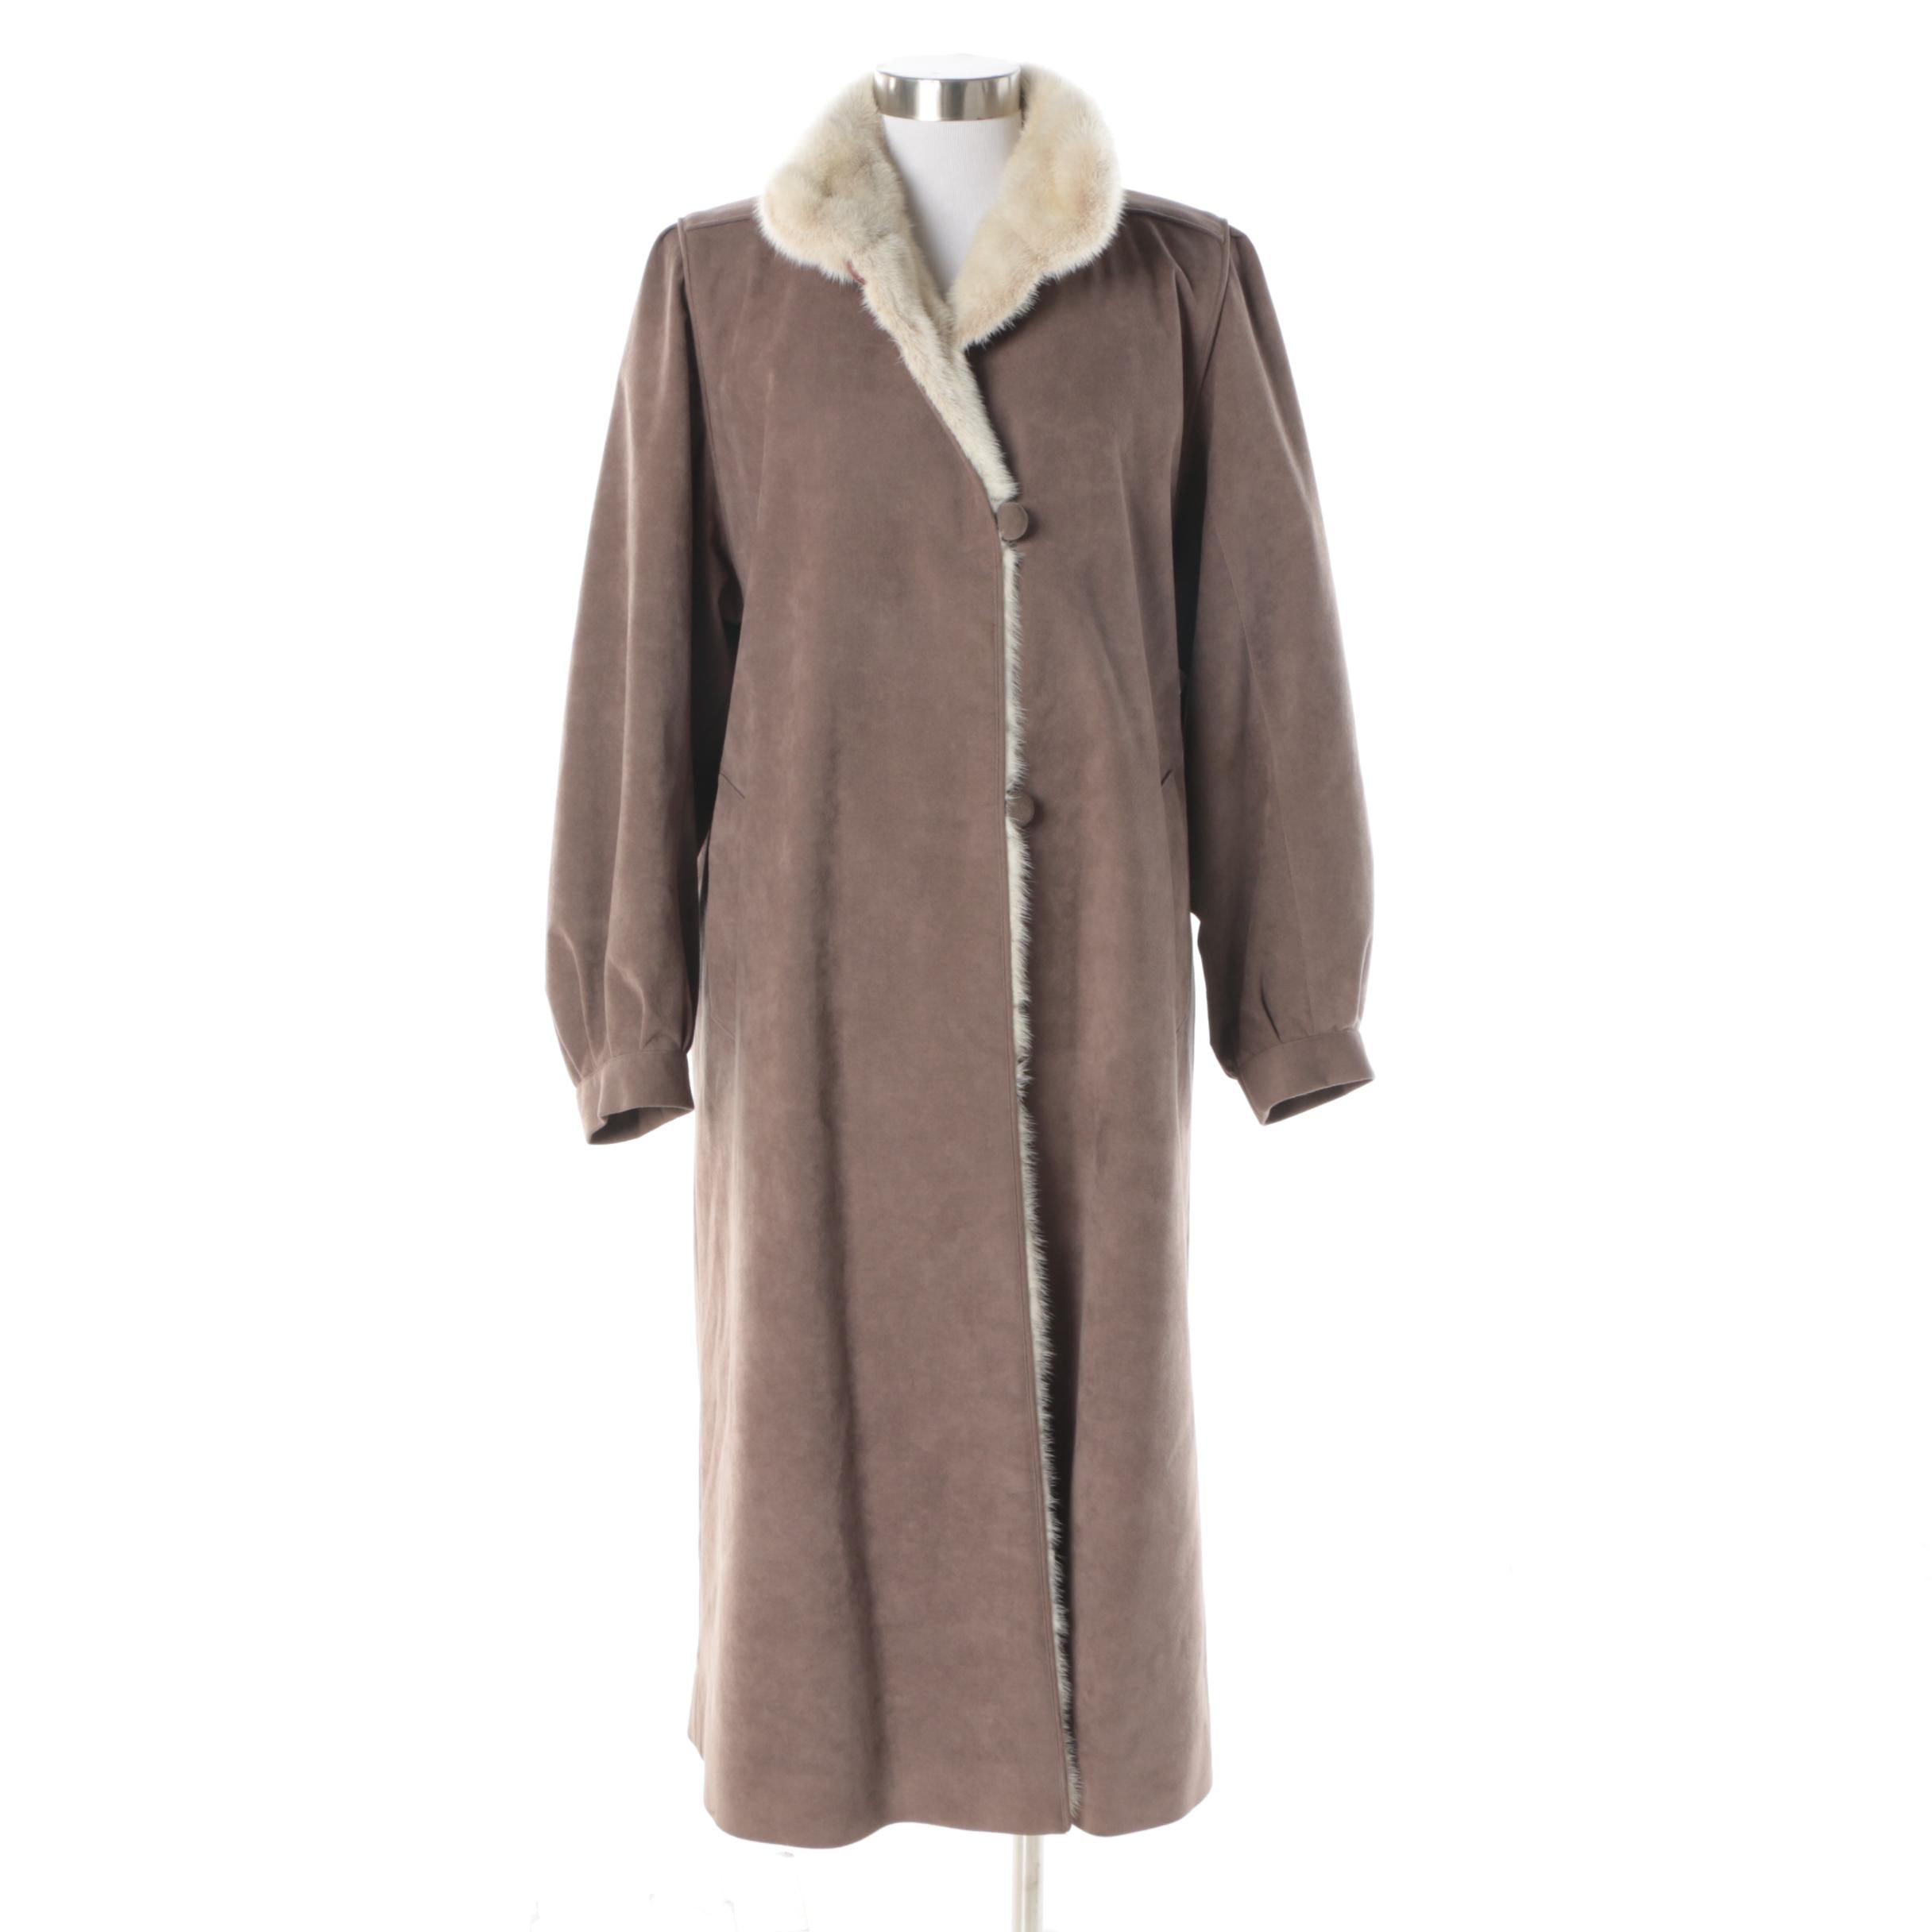 Women's Vintage Taupe Suede Coat with White Mink Fur Collar and Lining